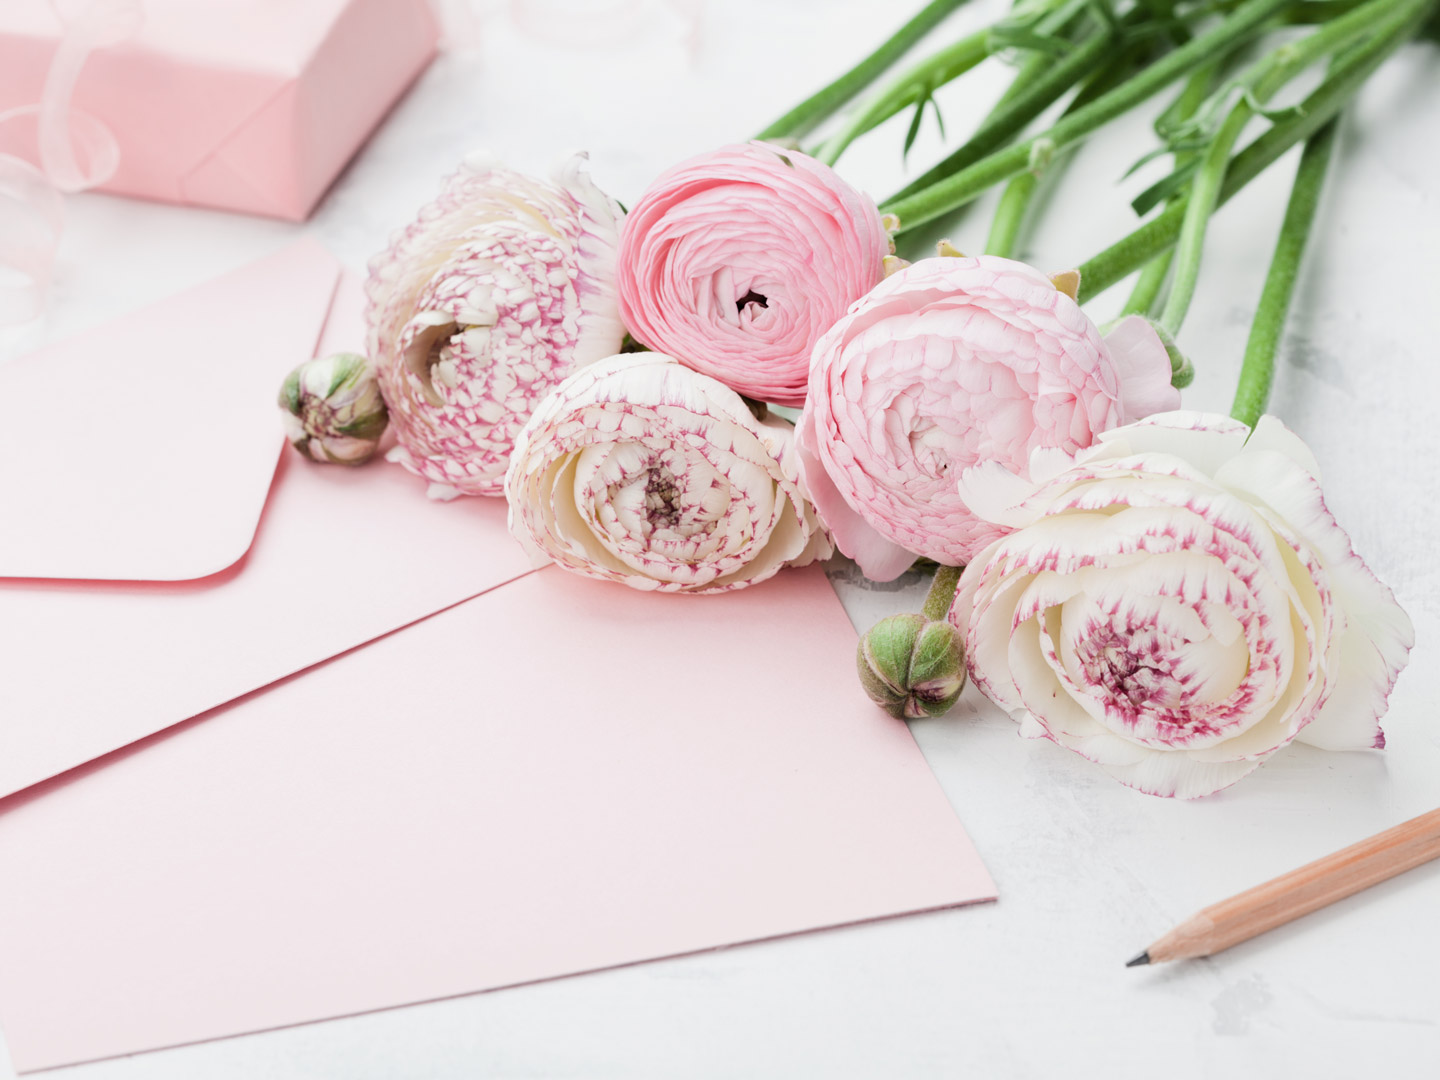 _____ may be gone, but his or her memory will live on in our hearts forever. 52 Sympathy Messages What To Write In A Condolence Card Ftd